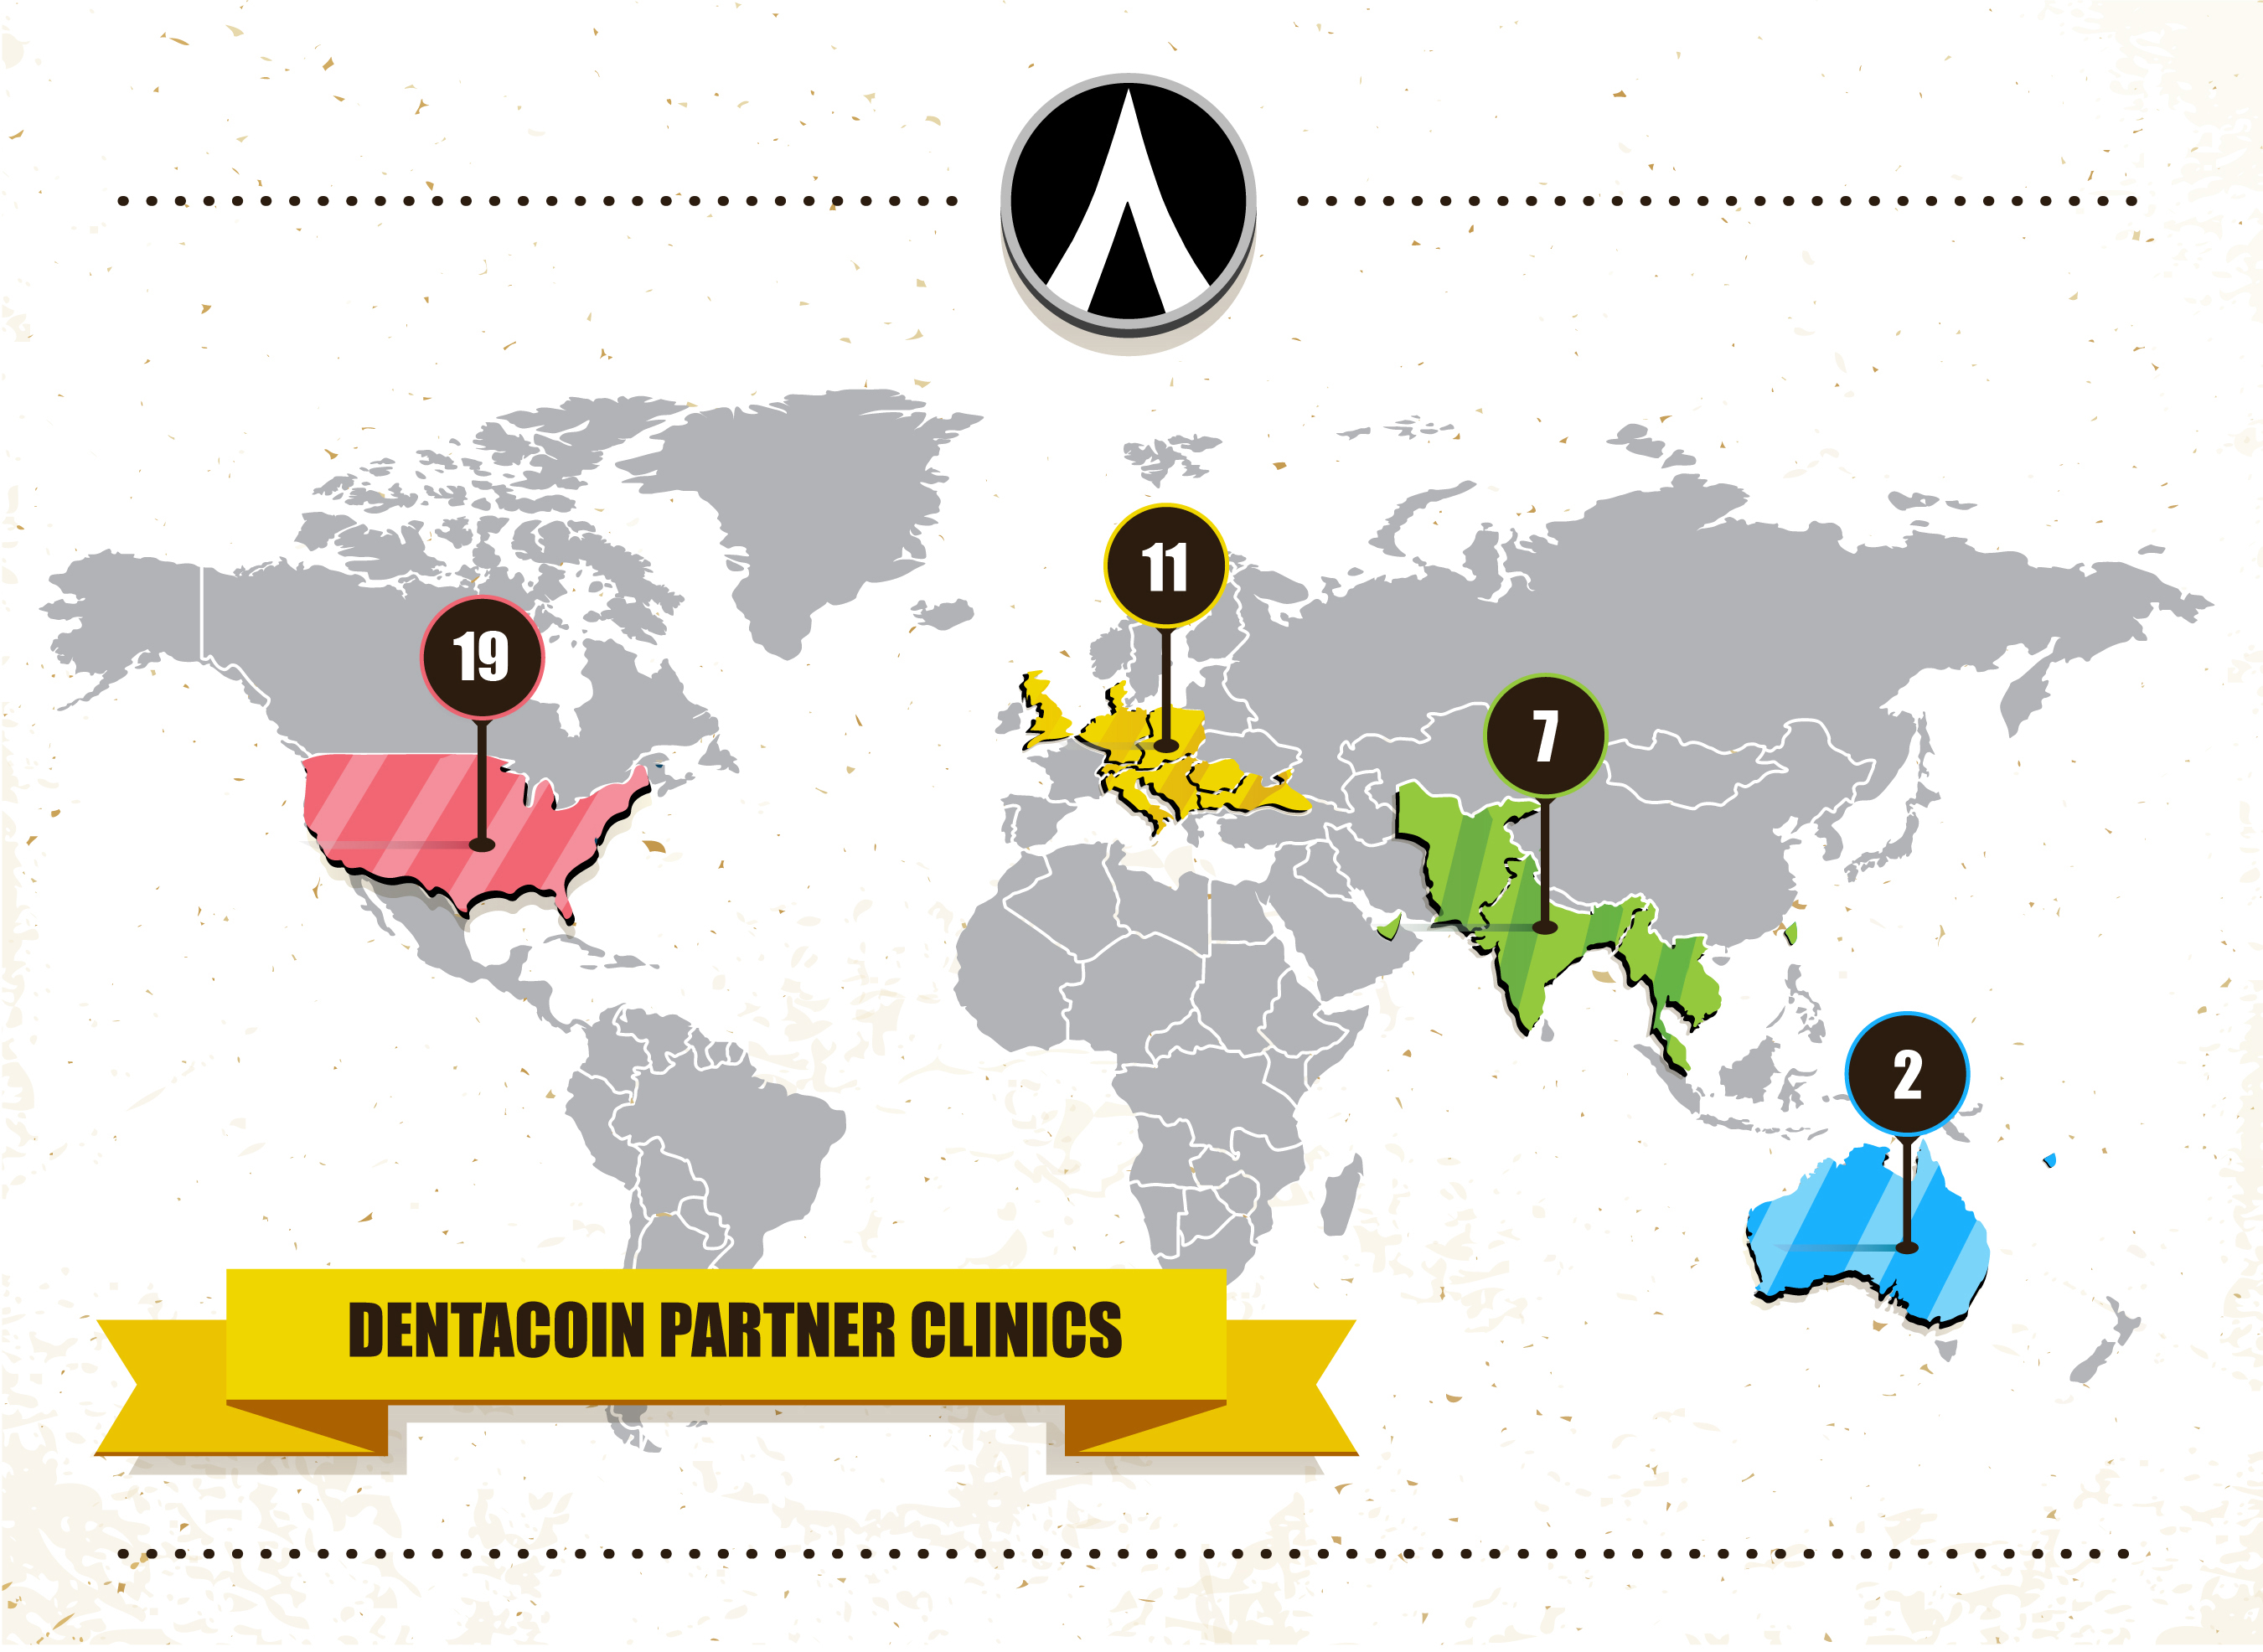 Dentacoin-Partner-Clinics-map